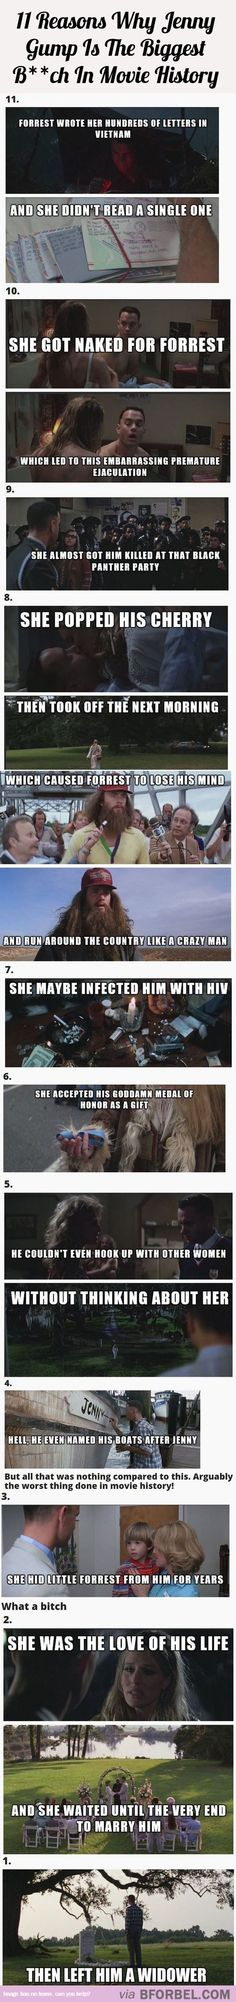 11 Reasons Why Jenny Gump Is The Biggest Bitch In Movie History…